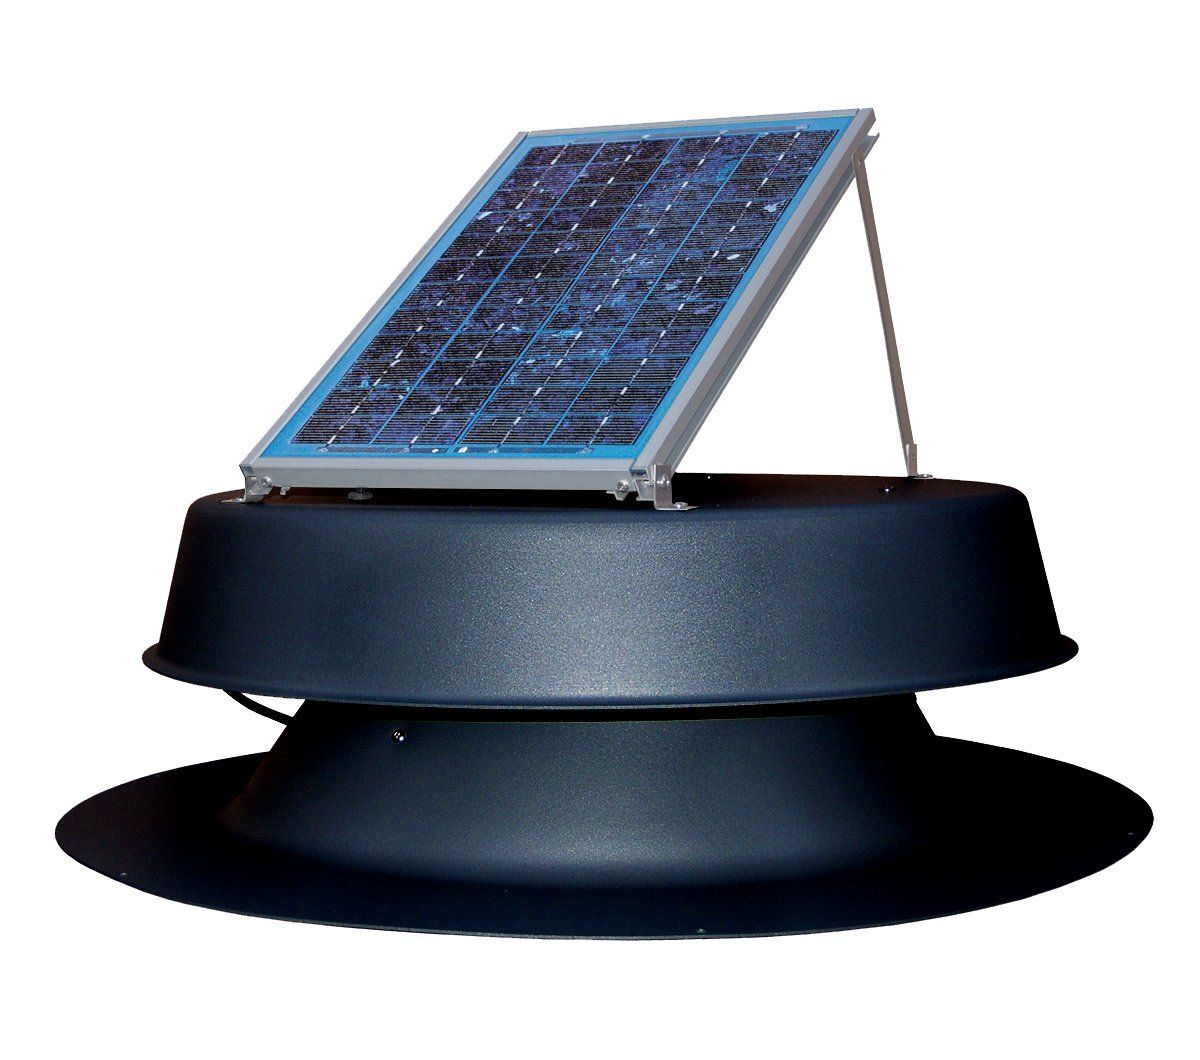 Solar Attic Fan 12 Watts 1200 Sq Ft Black To View Further For This Item Visit The Image Link Solar Energy Panels Best Solar Panels Solar Panels